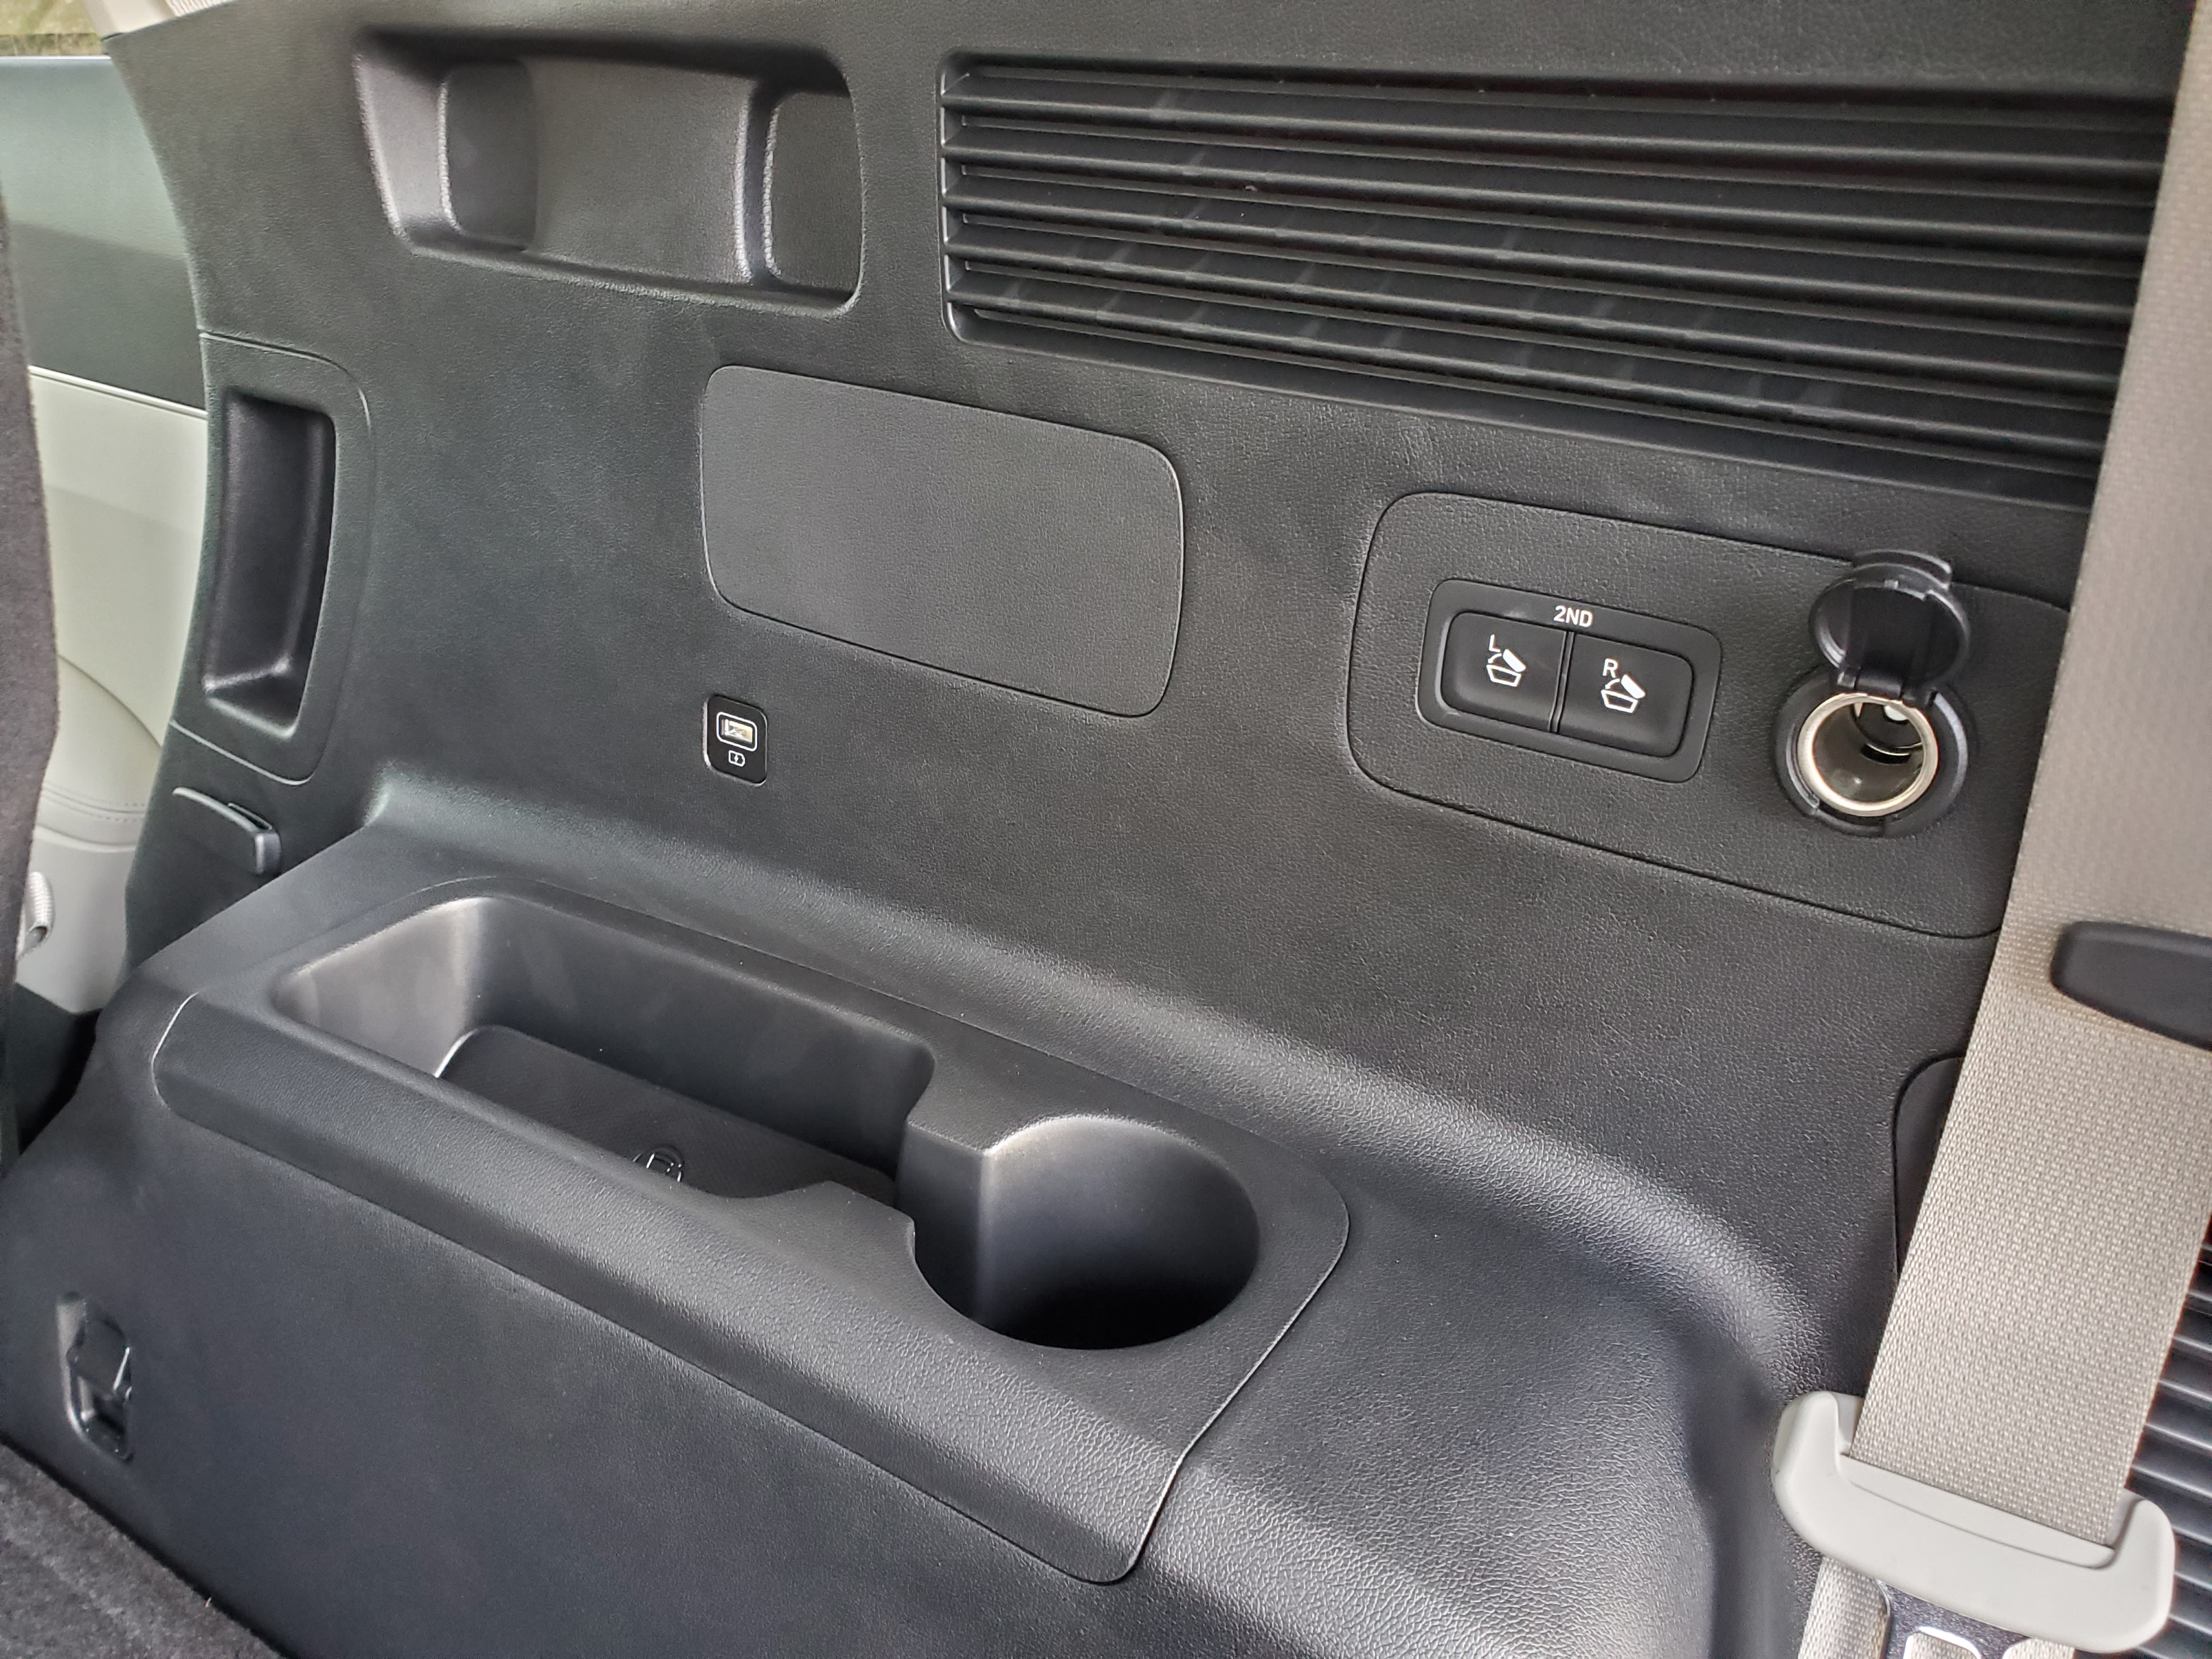 USB outlets on both sides of the 3rd row as well as a 12V outlet for the cargo area when needed.